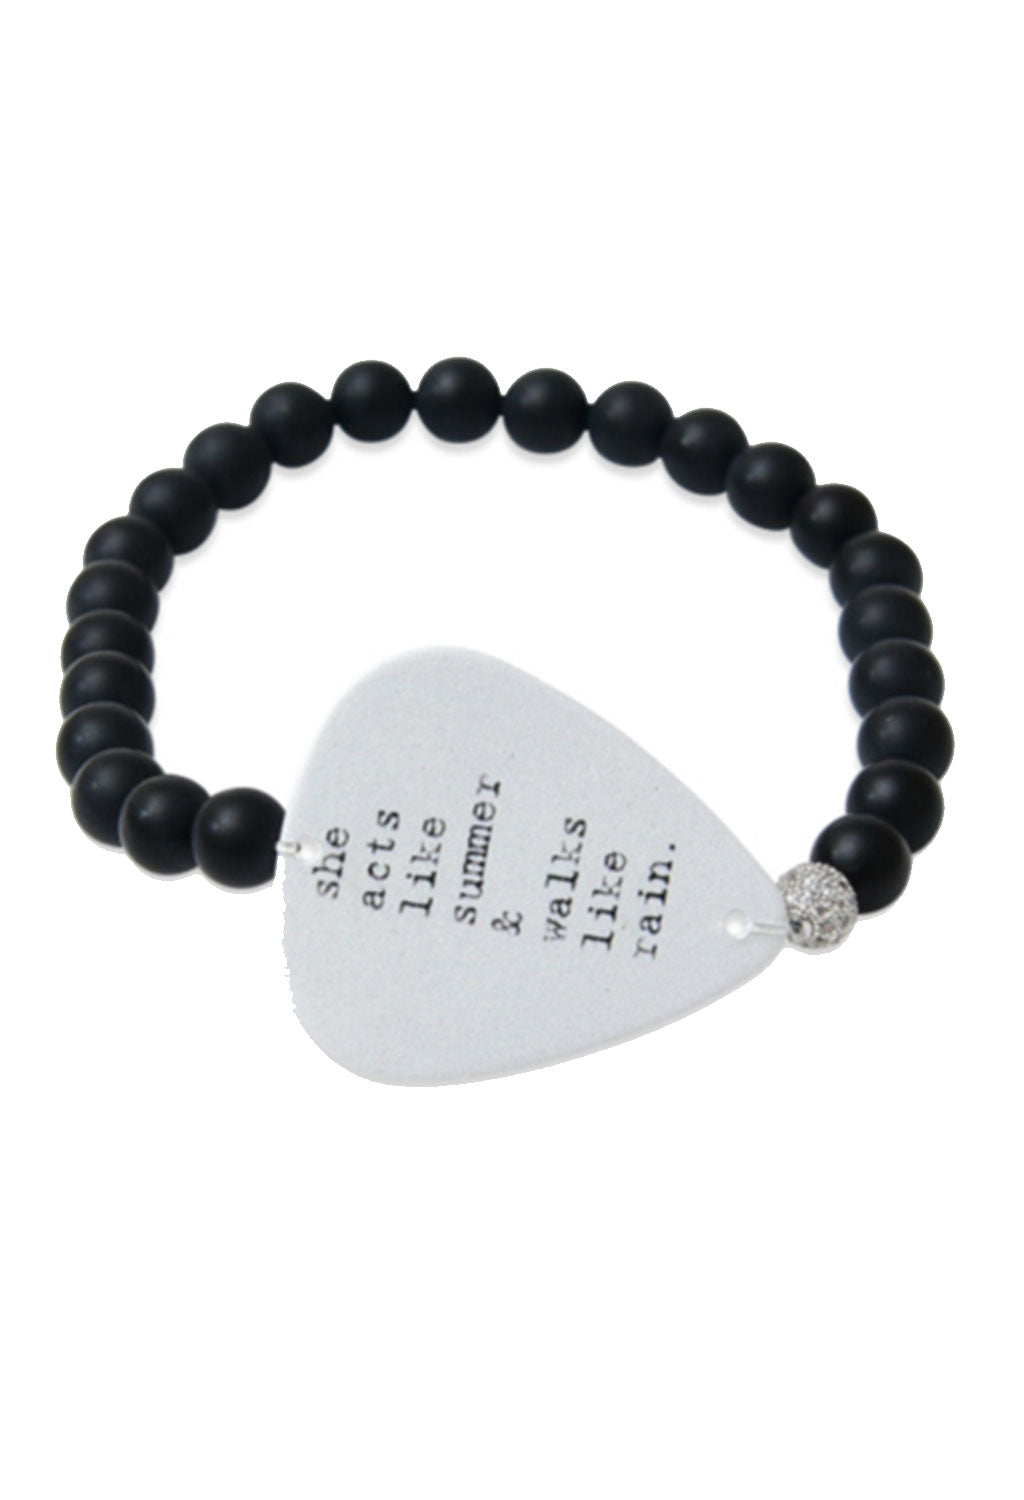 Black Onyx 'She Walks Like Rain' Guitar Pick Bracelet